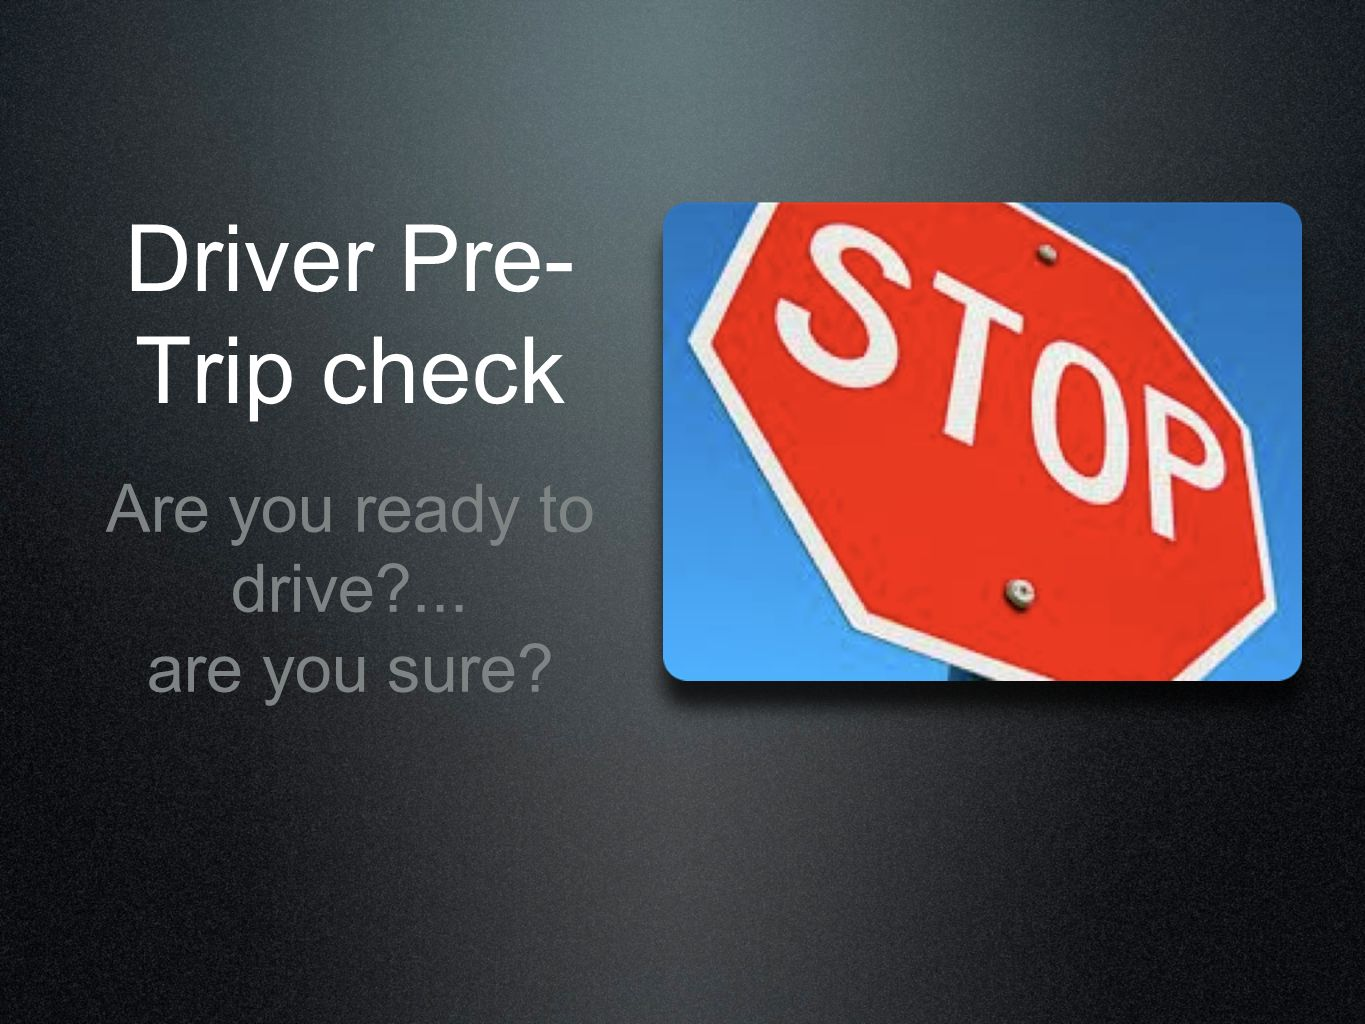 Driver Pre-Trip check Are you ready to drive ... are you sure